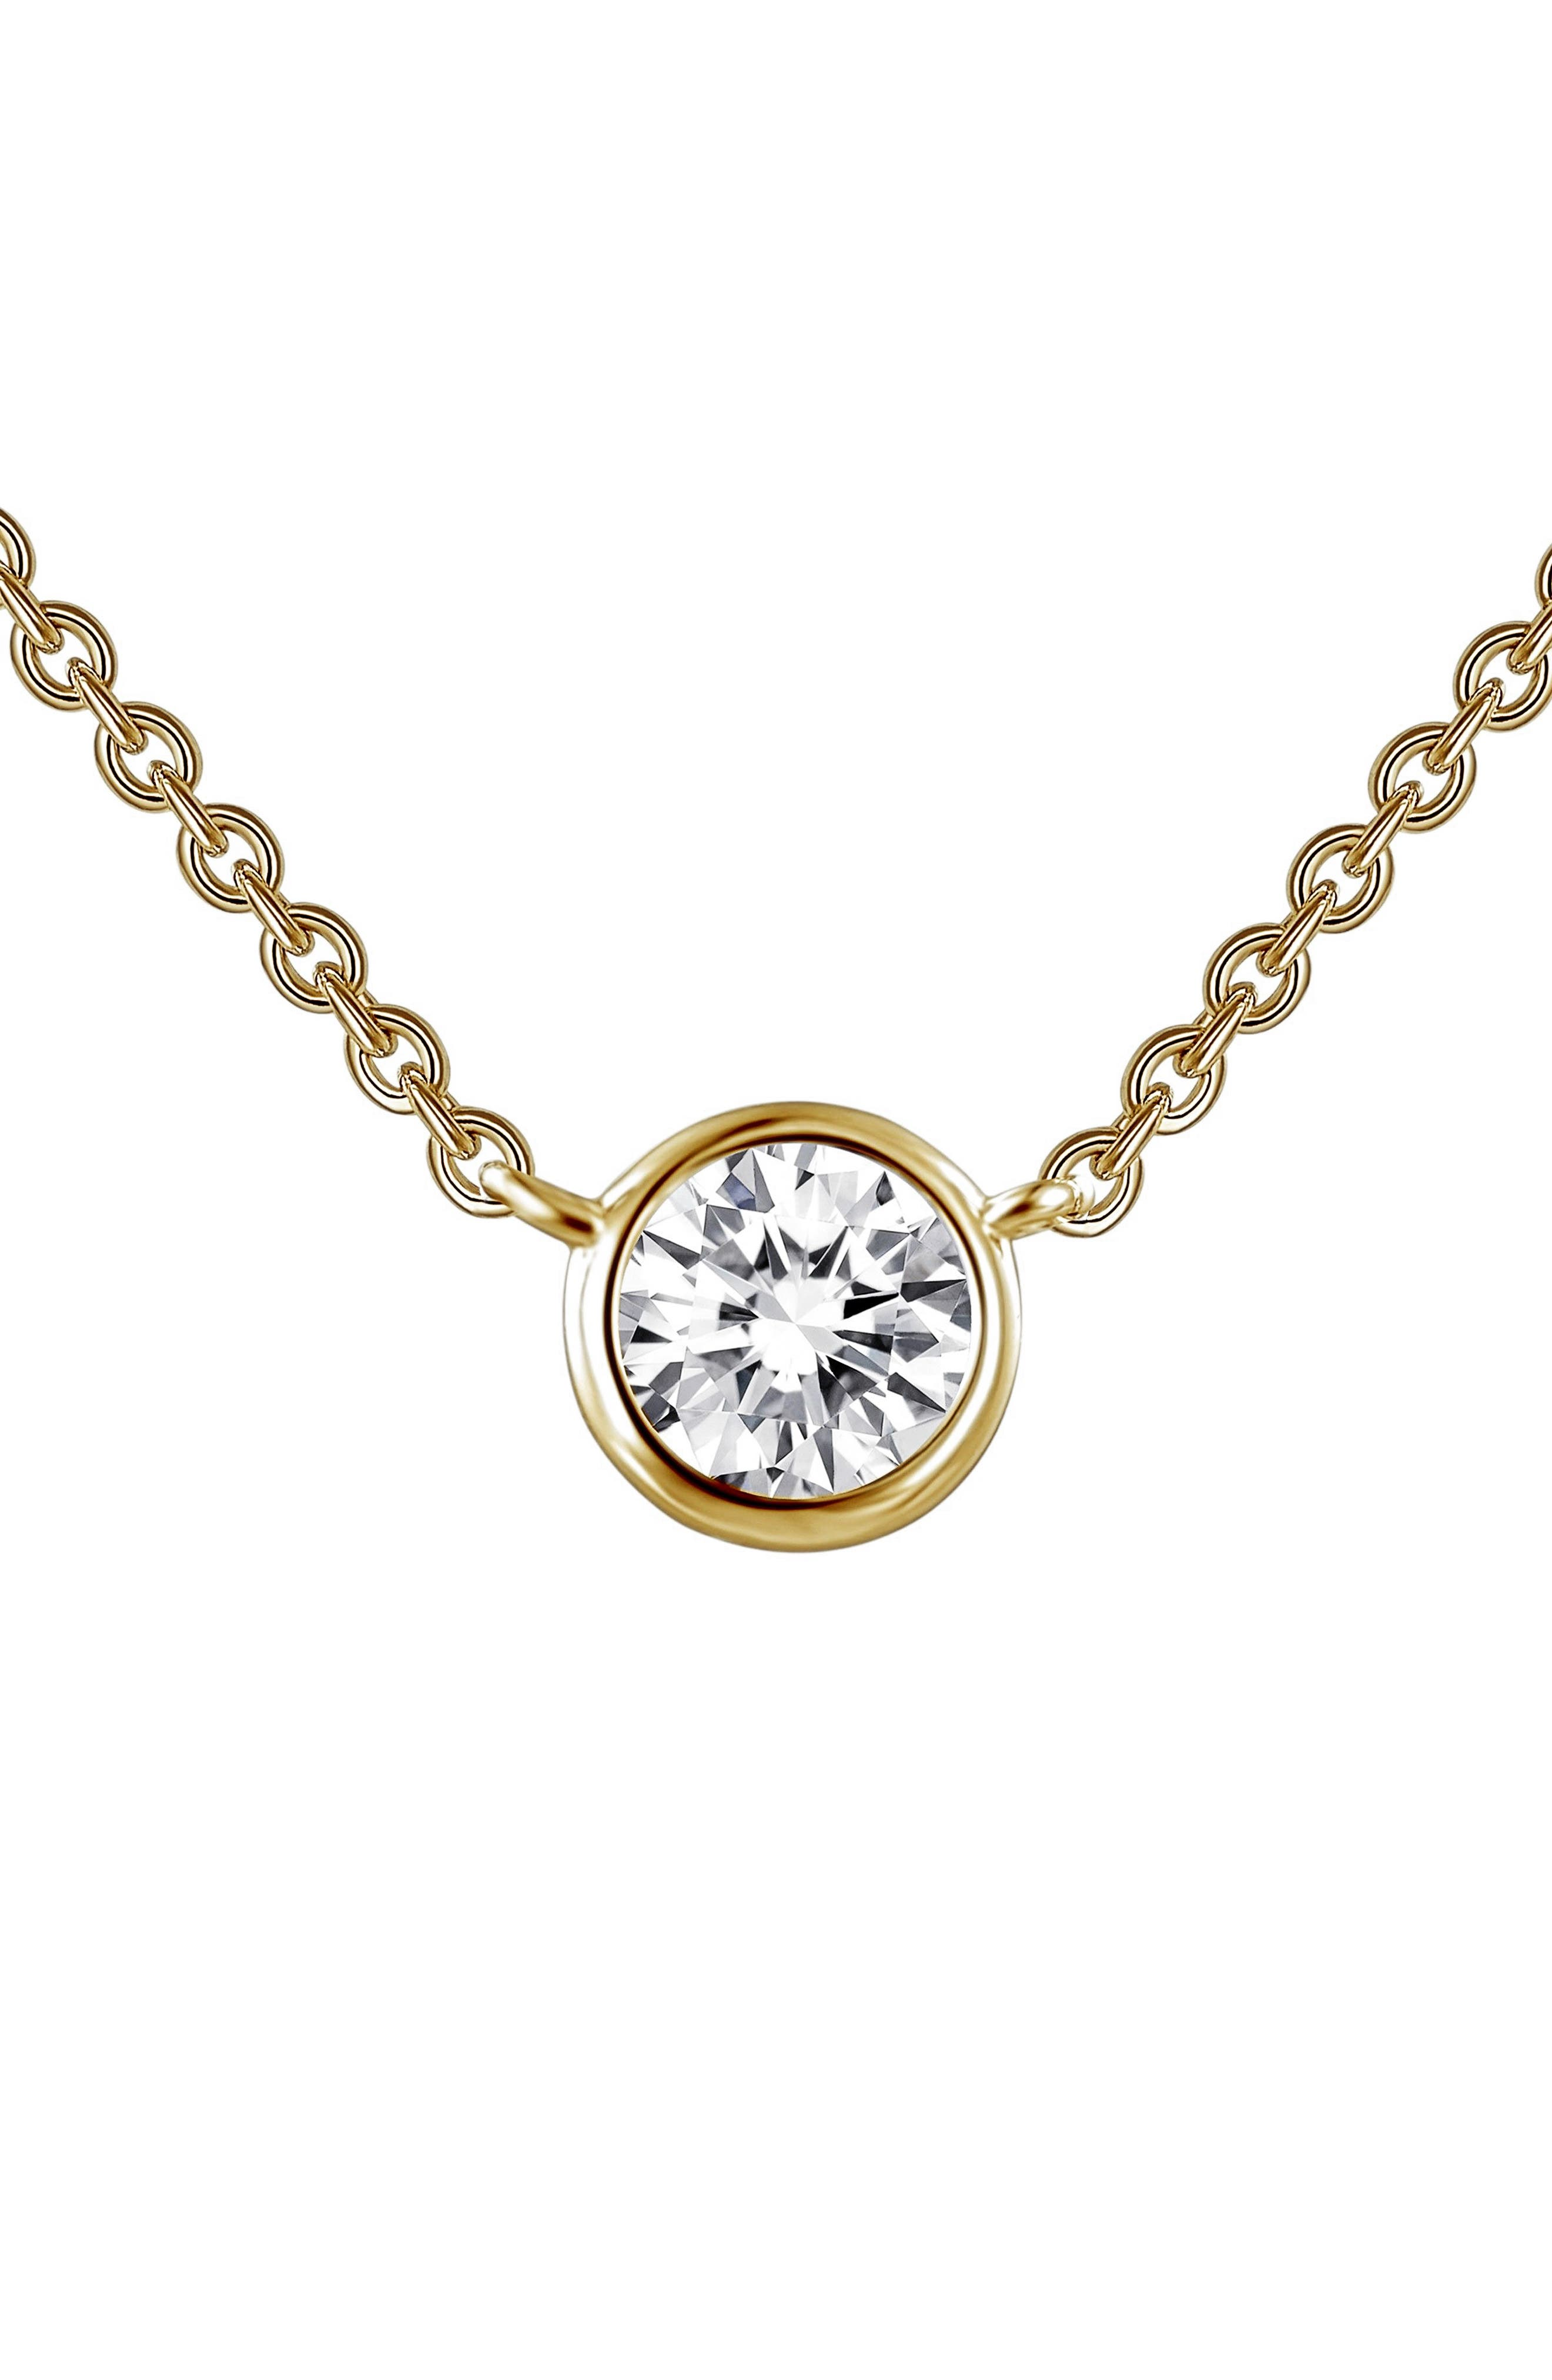 Simulated Diamond Pendant Necklace,                         Main,                         color, Gold